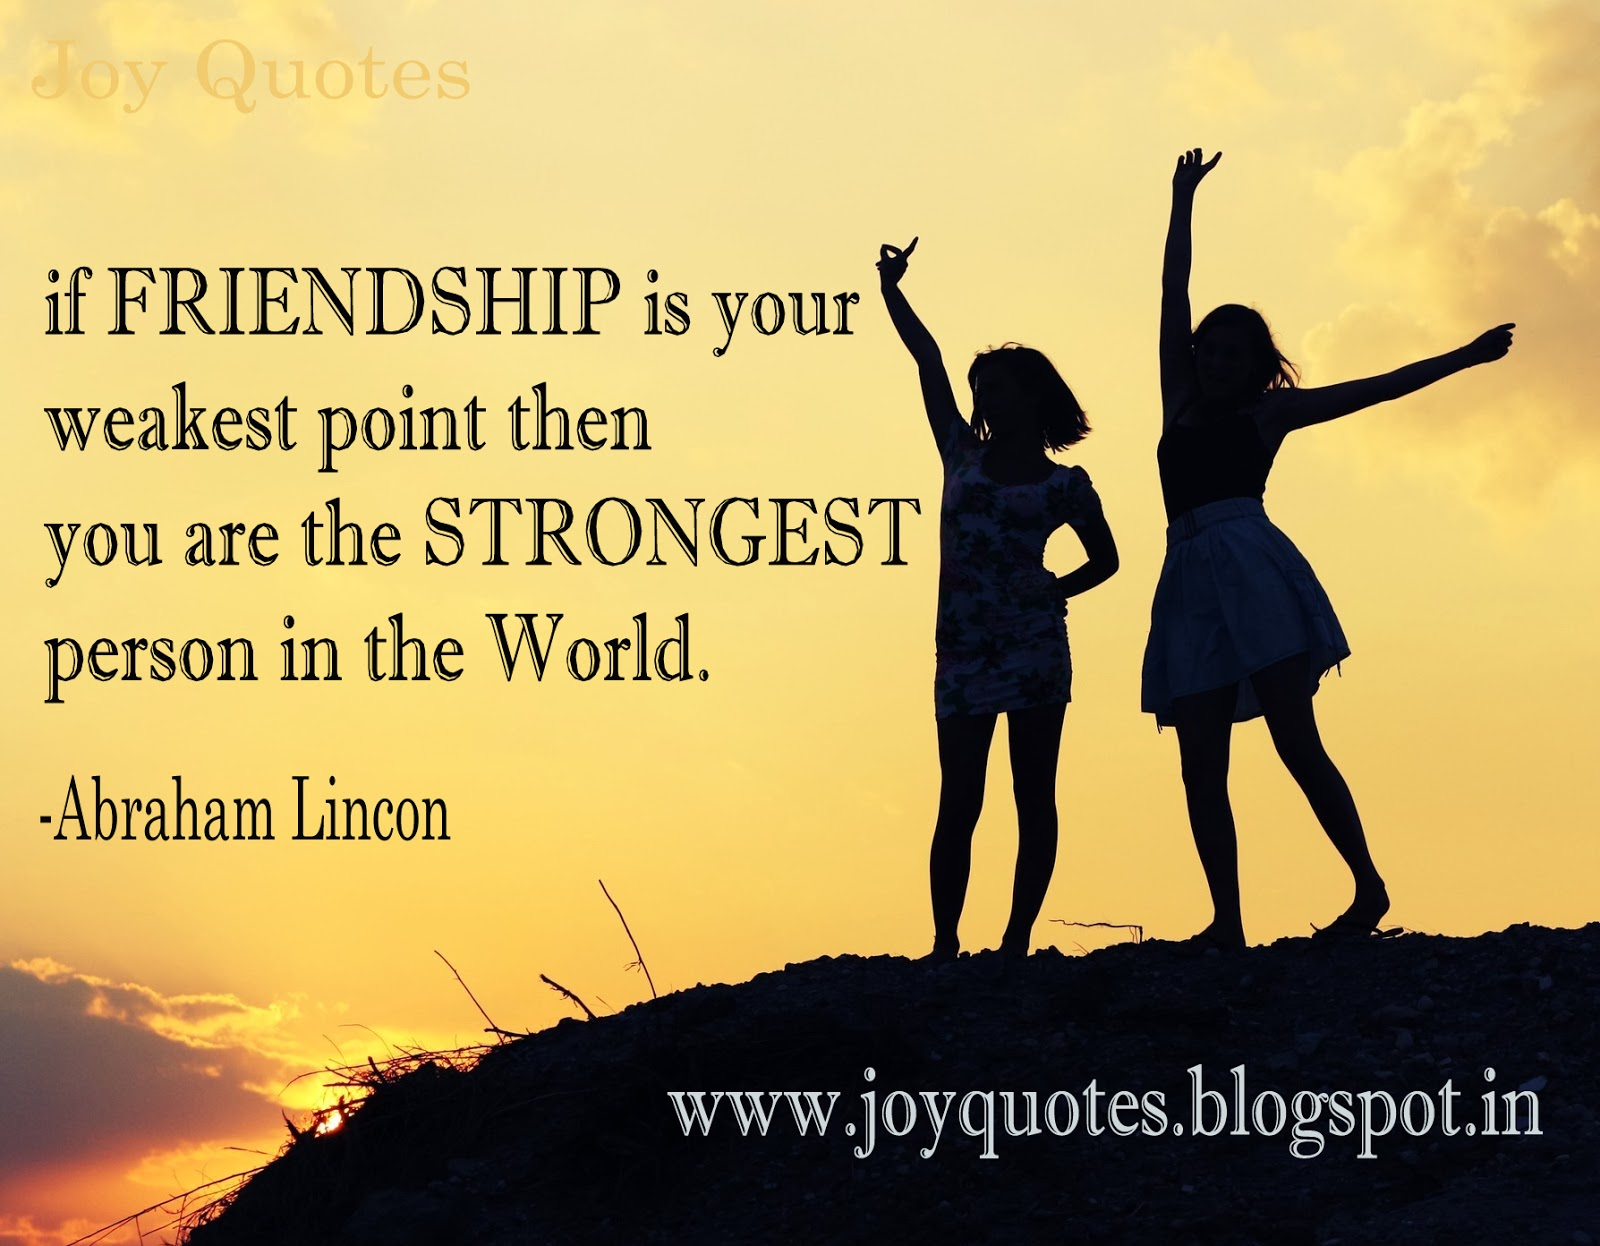 Quotes About Friendship: Joy Quotes